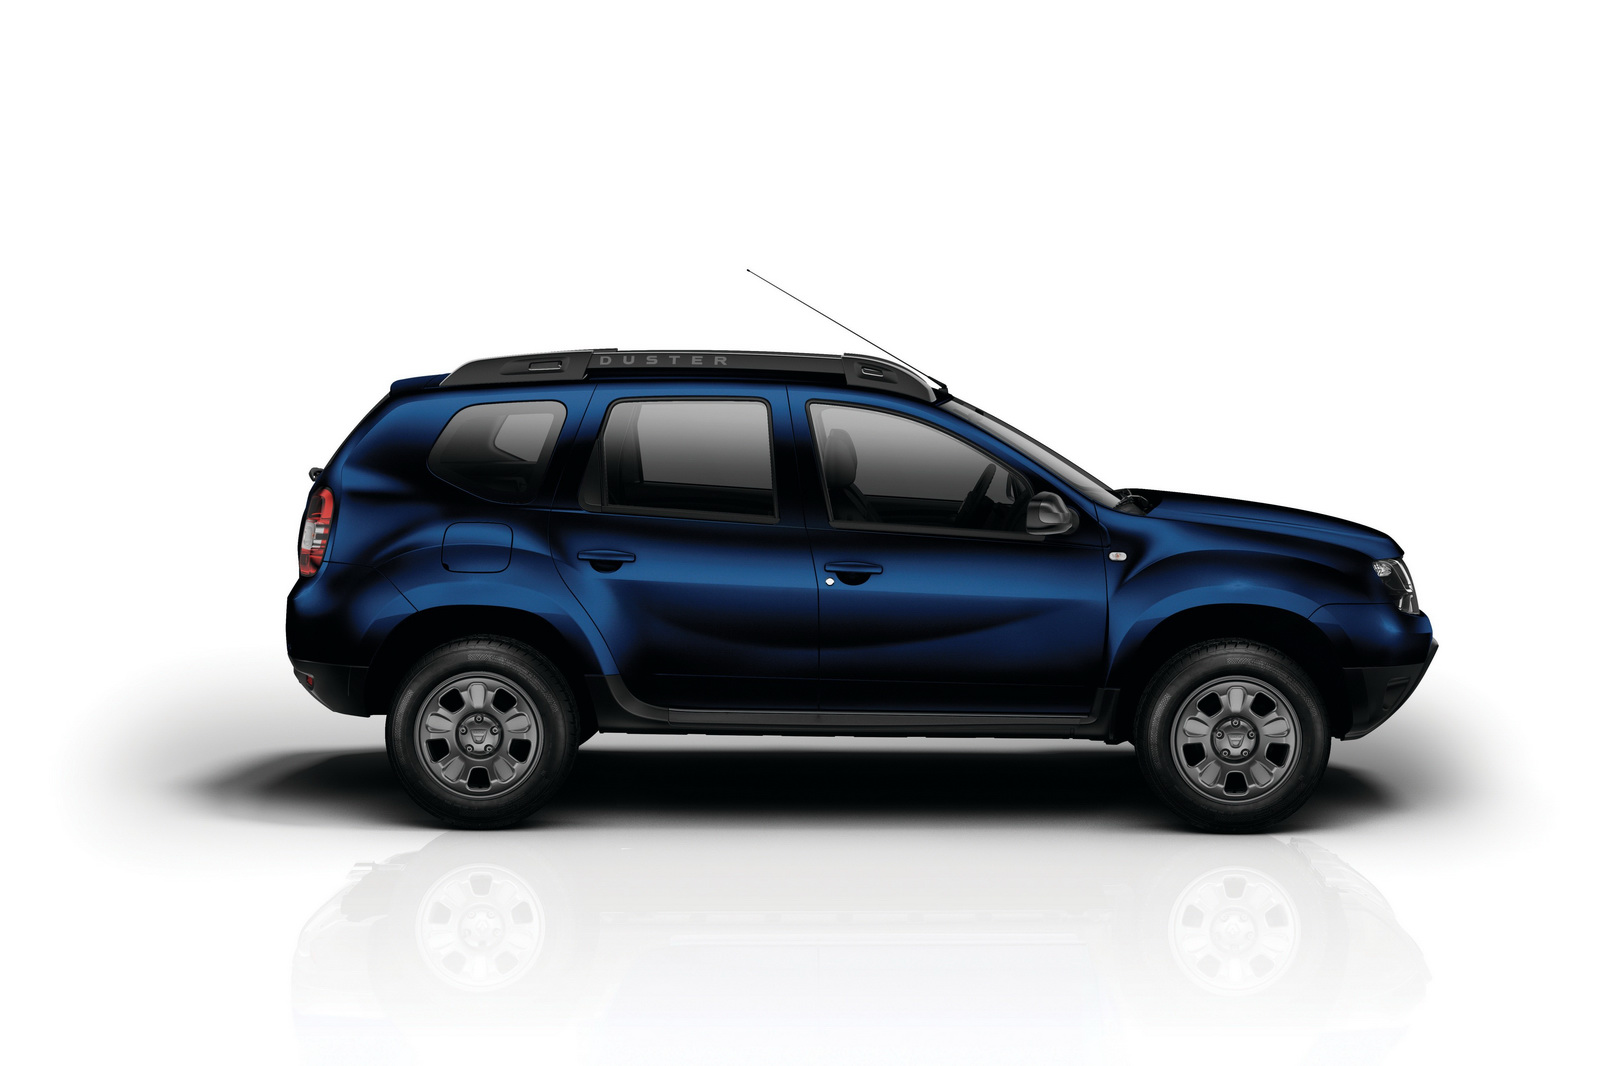 dacia 10th anniversary special editions revealed includes duster and lodgy motoroids. Black Bedroom Furniture Sets. Home Design Ideas